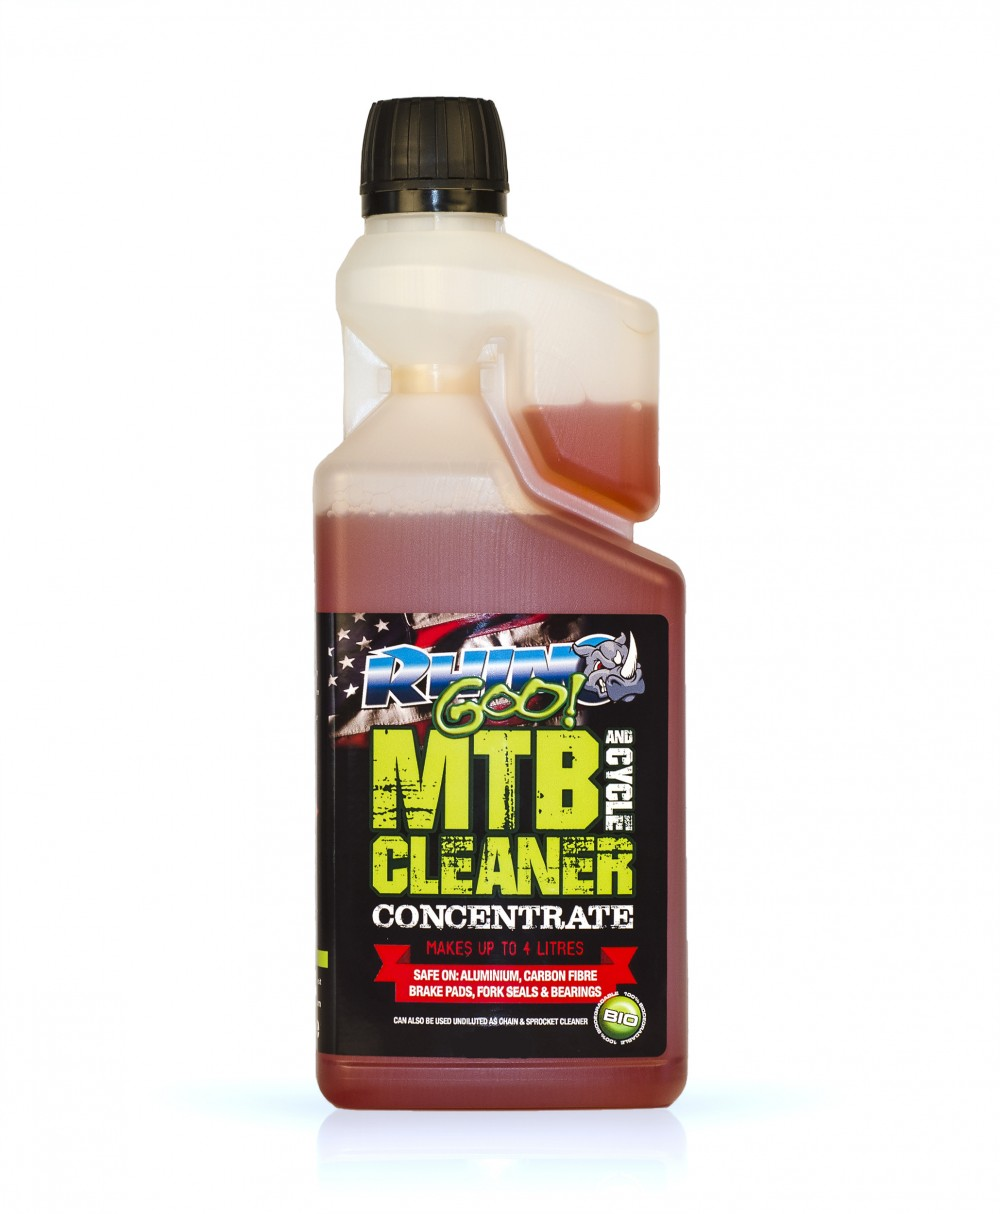 MTB Rhino Goo Concentrated Bike and Chain Cleaner